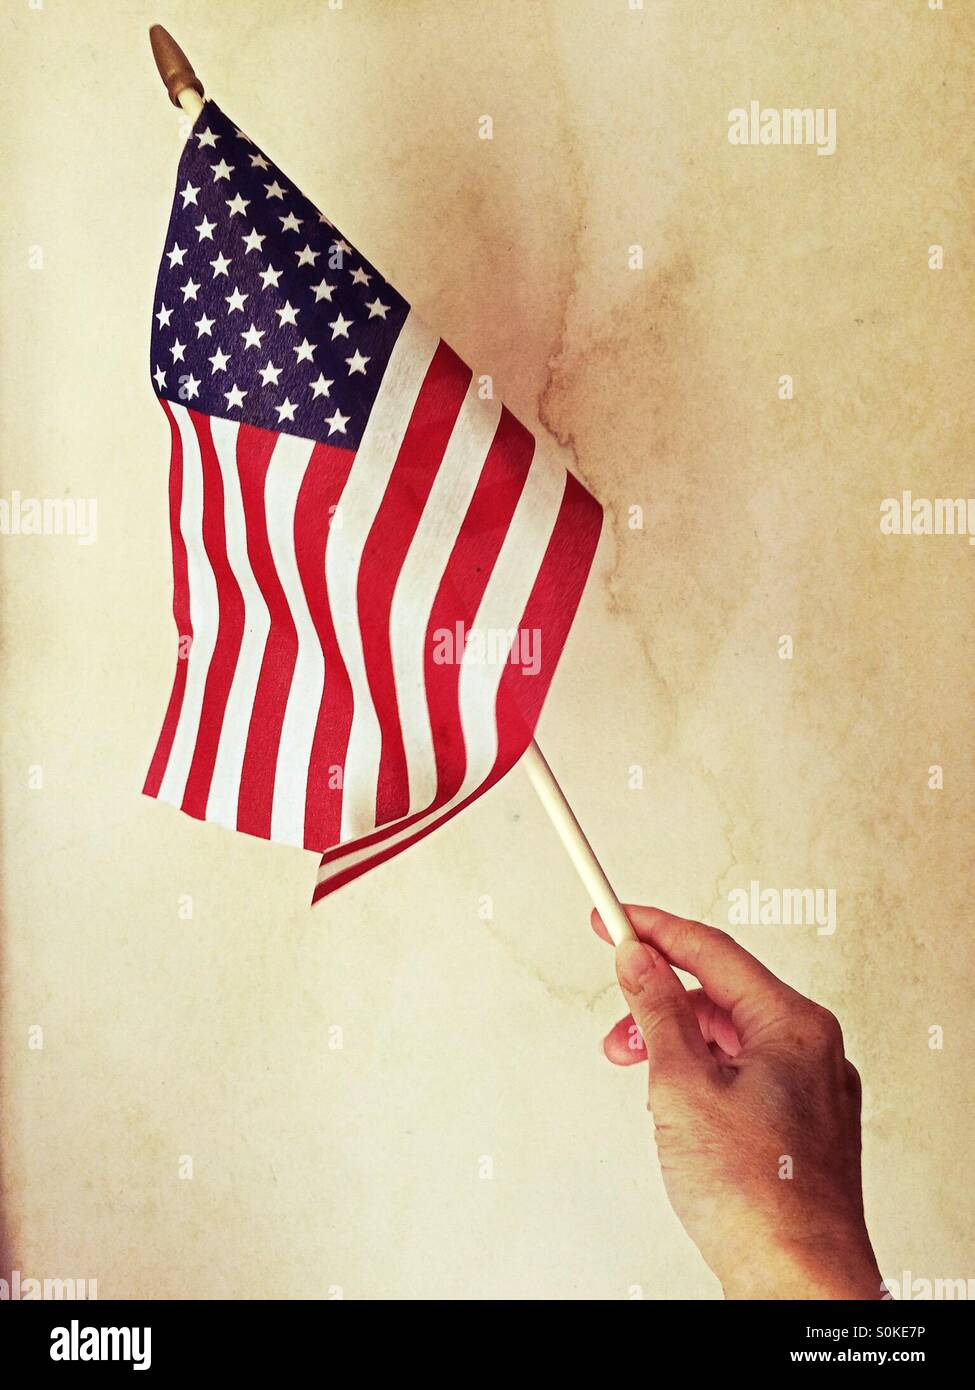 Hand Holding American Flag - Stock Image